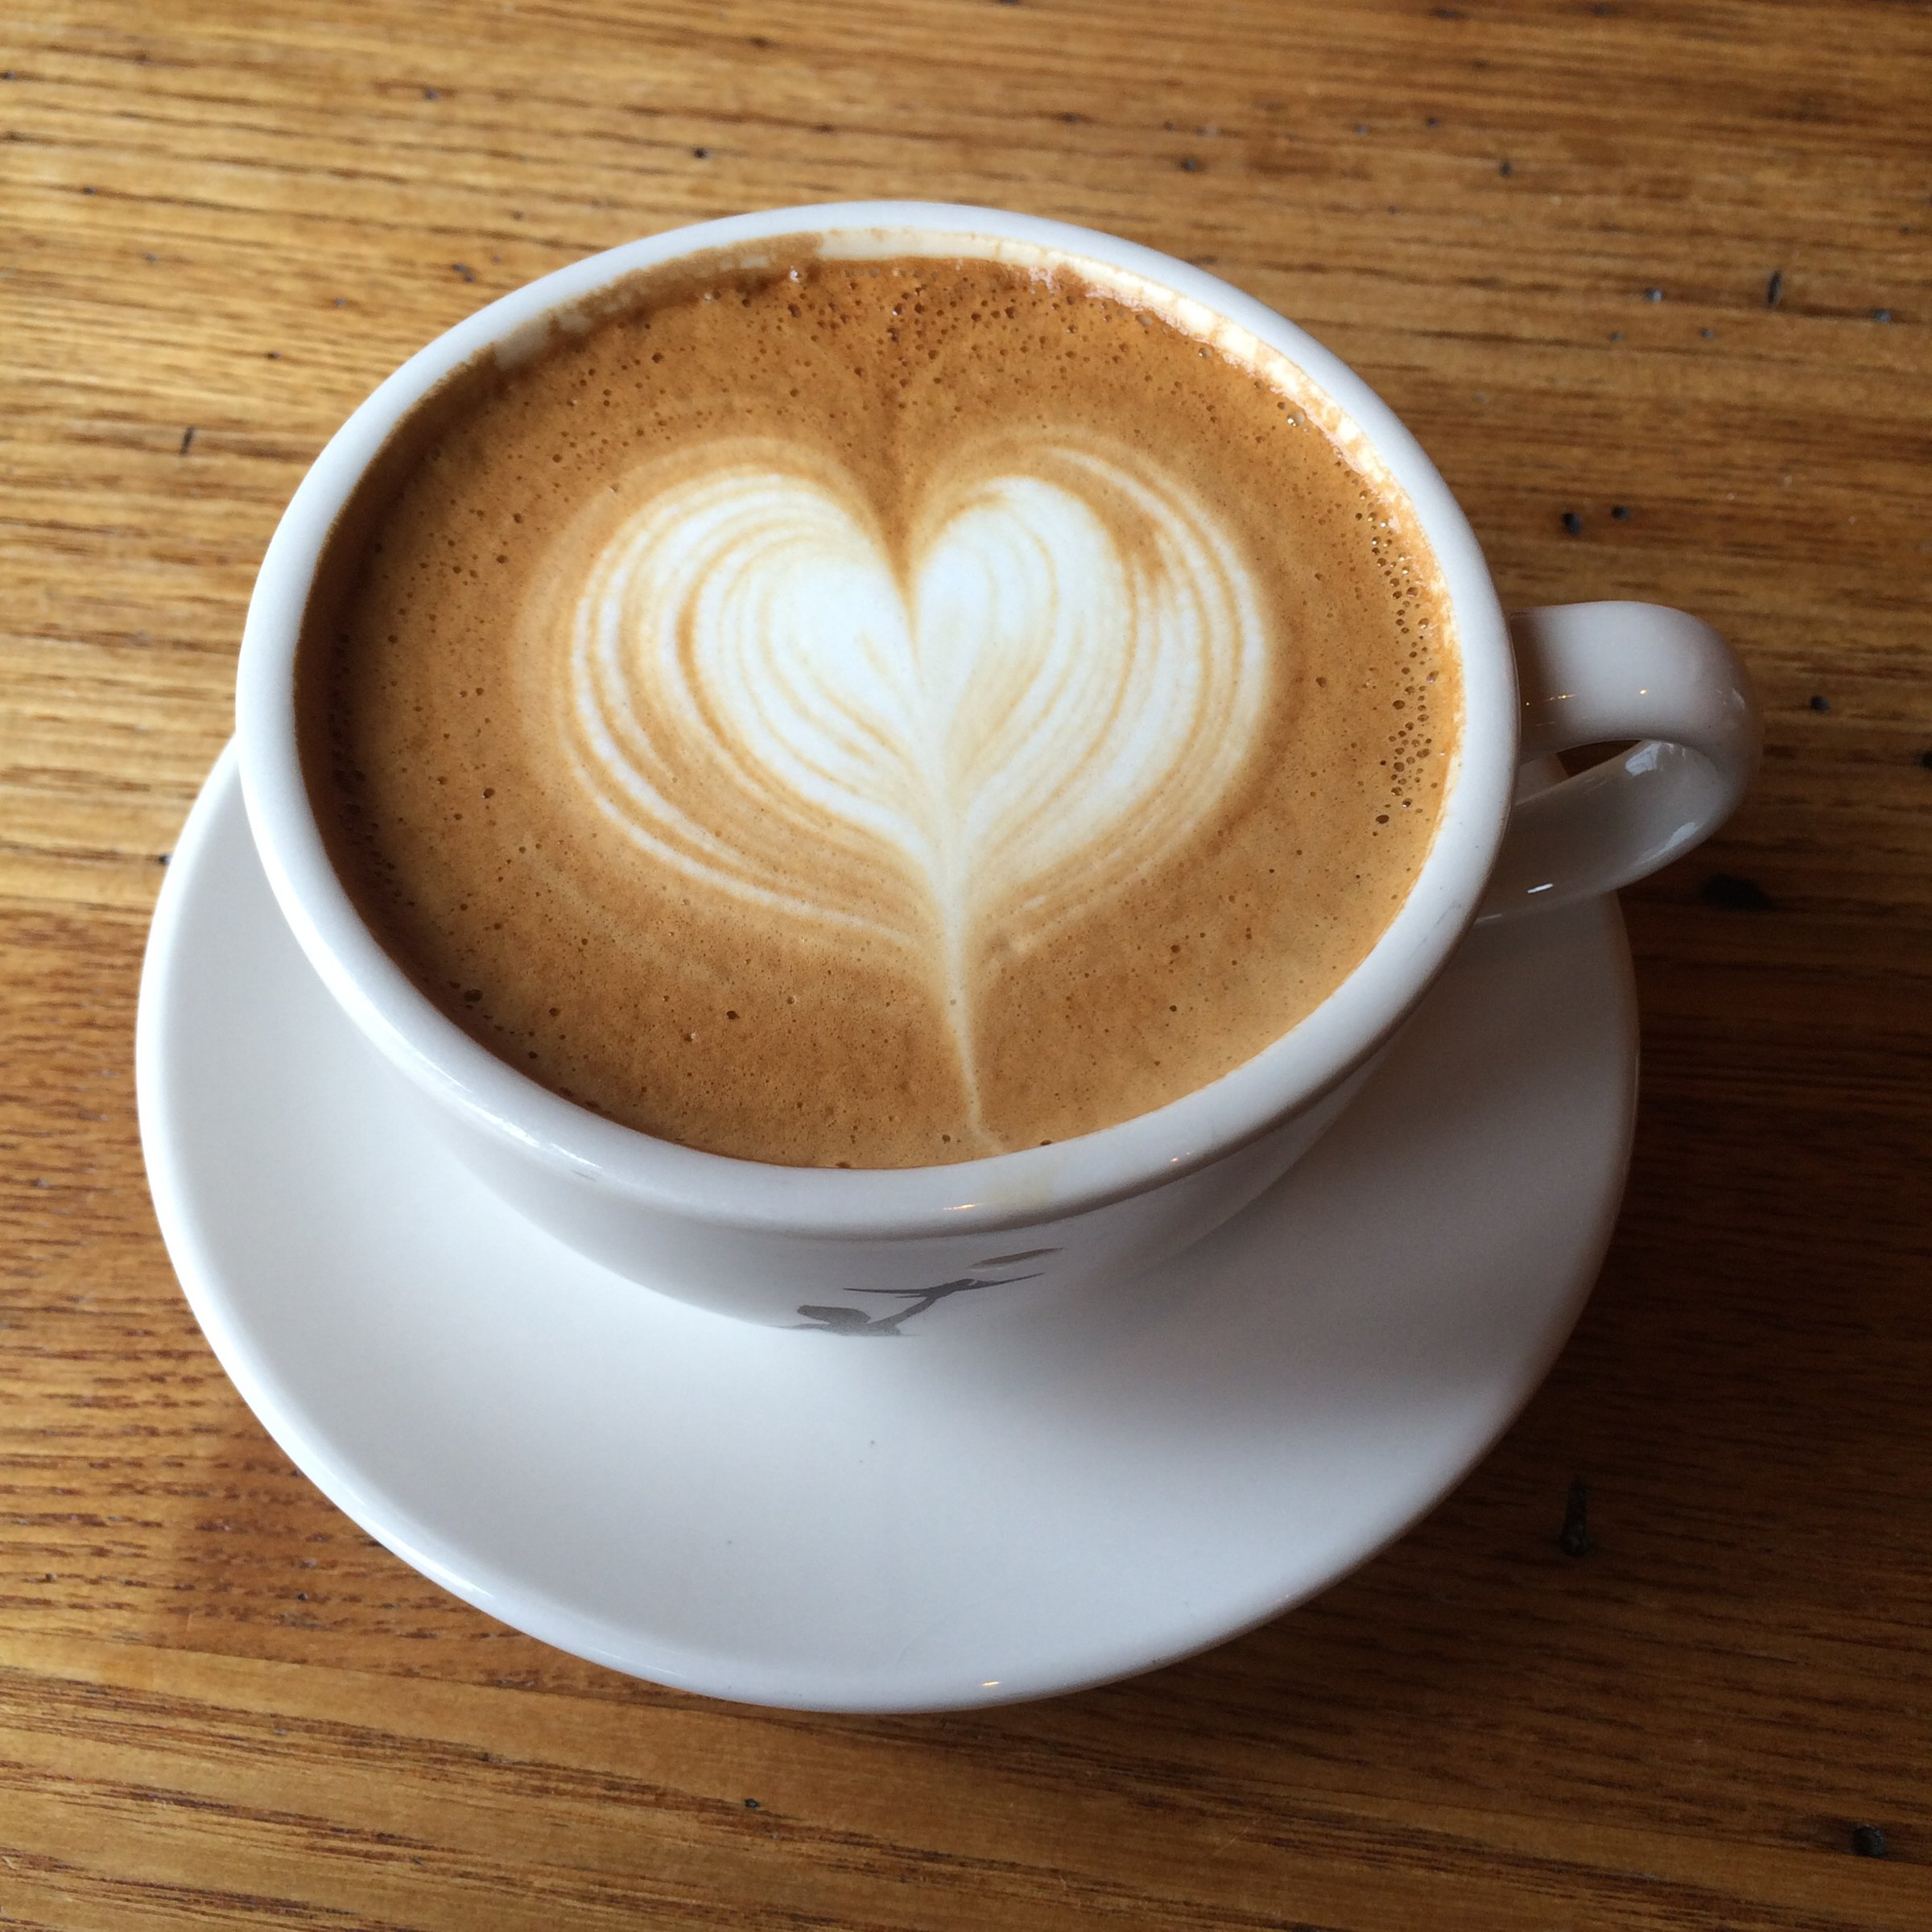 A latte with heart-shaped latte art.